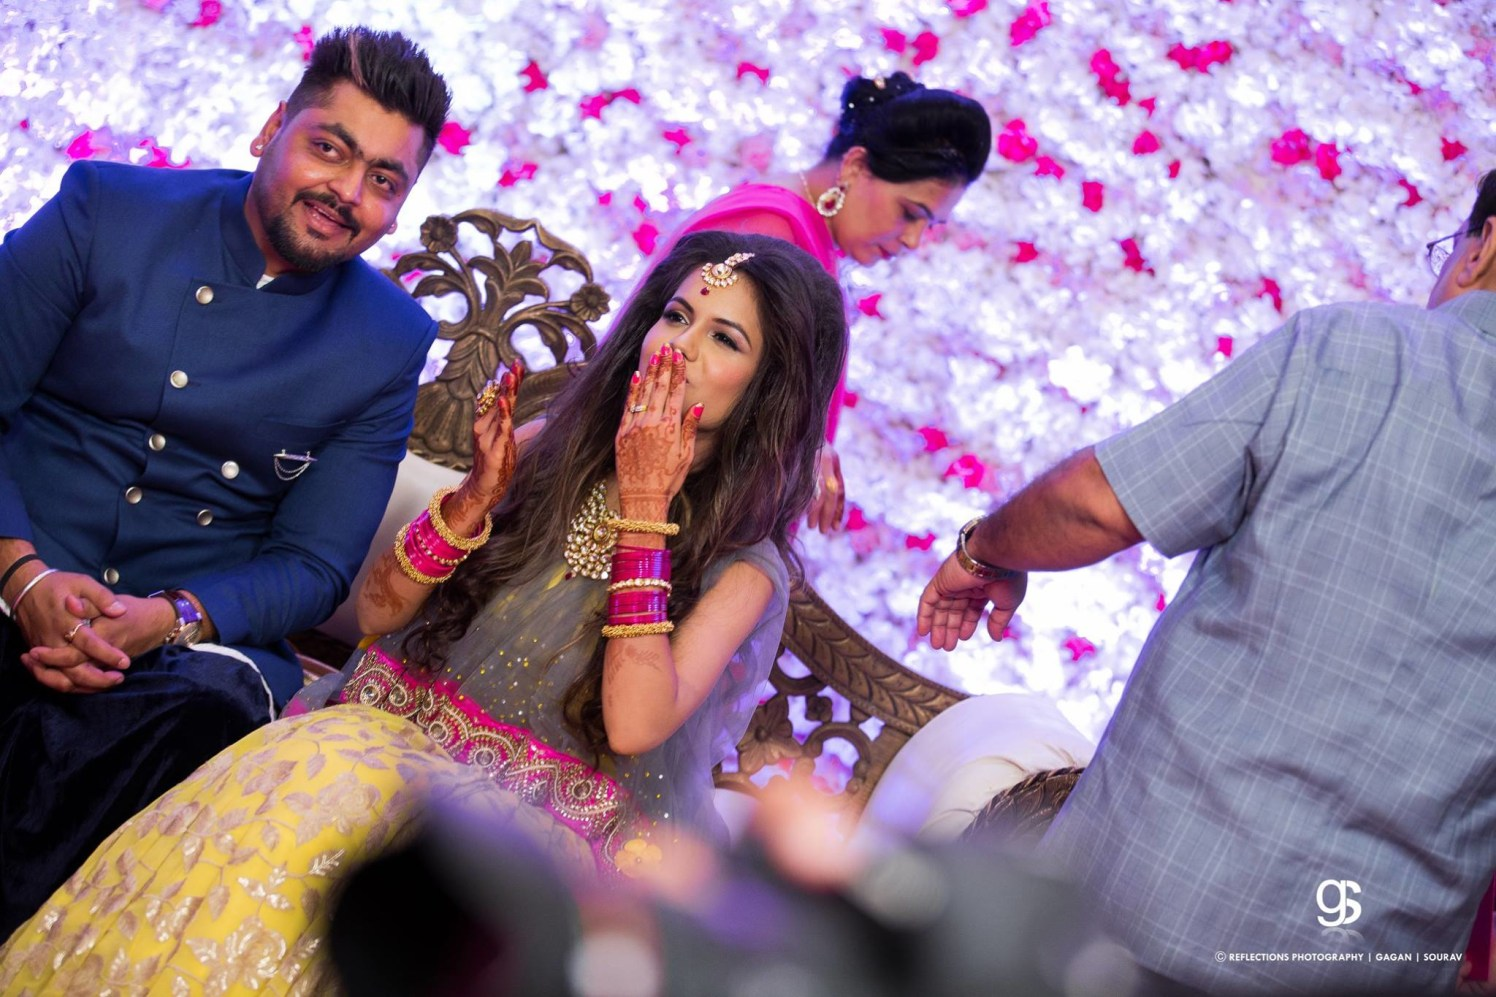 Blow a kiss! by Reflections Photography Wedding-photography | Weddings Photos & Ideas